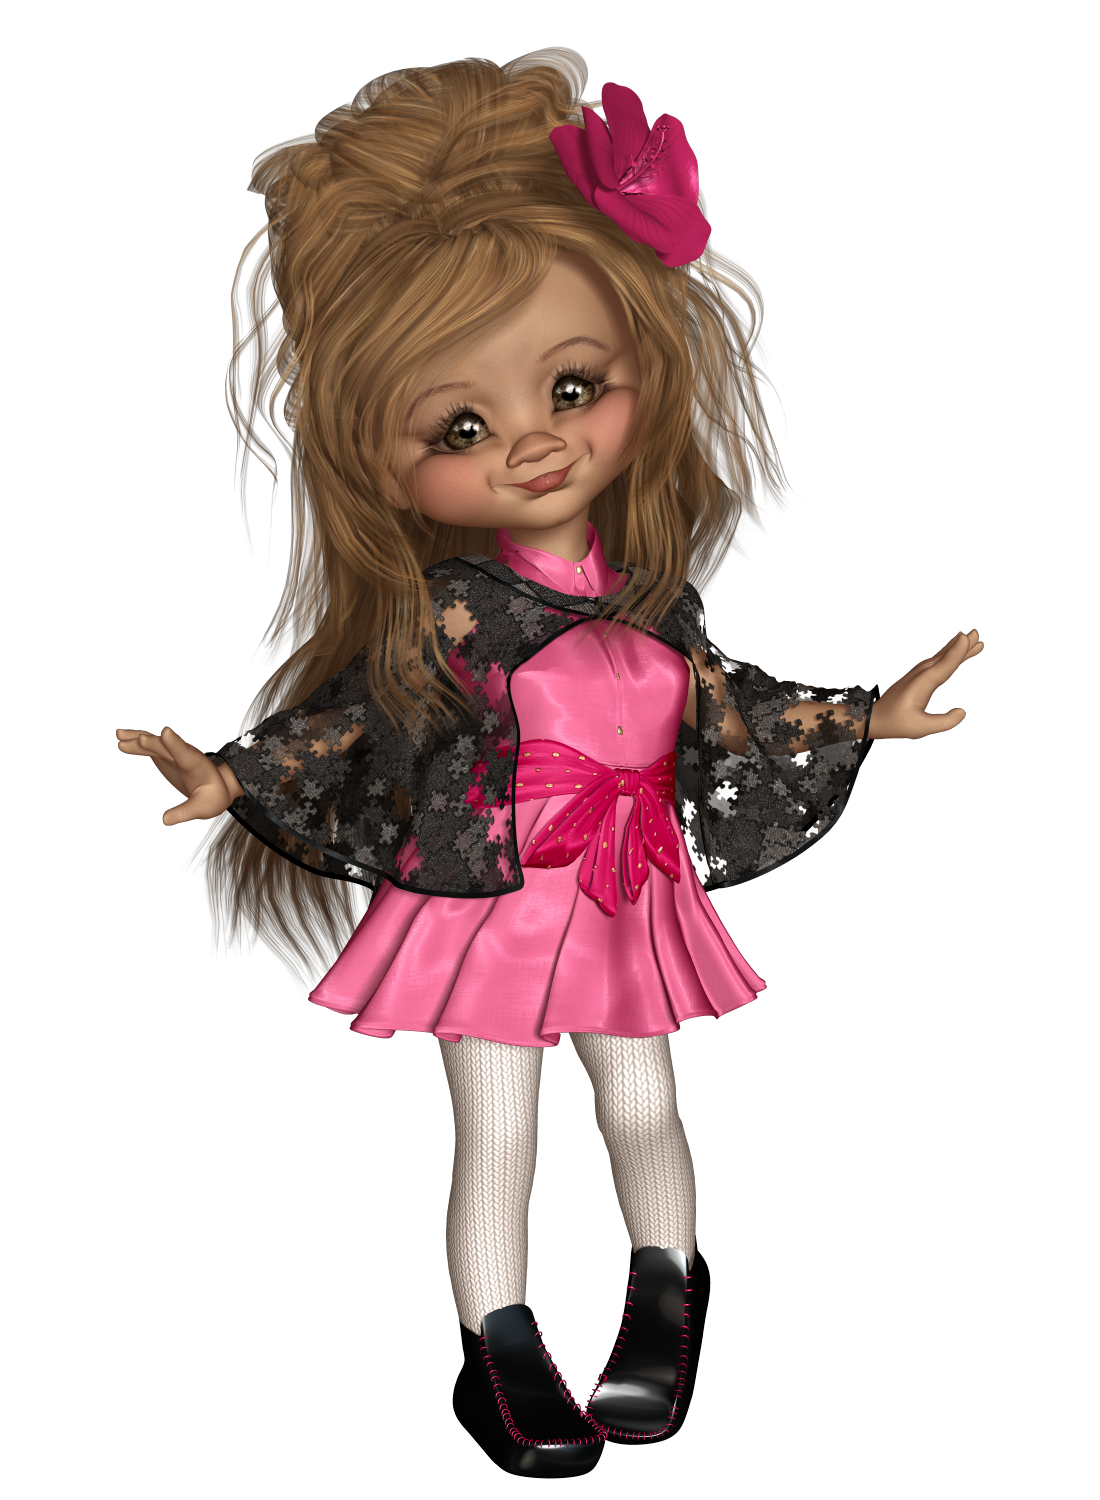 Clip dresses glitter glider. Larissa png cookie and